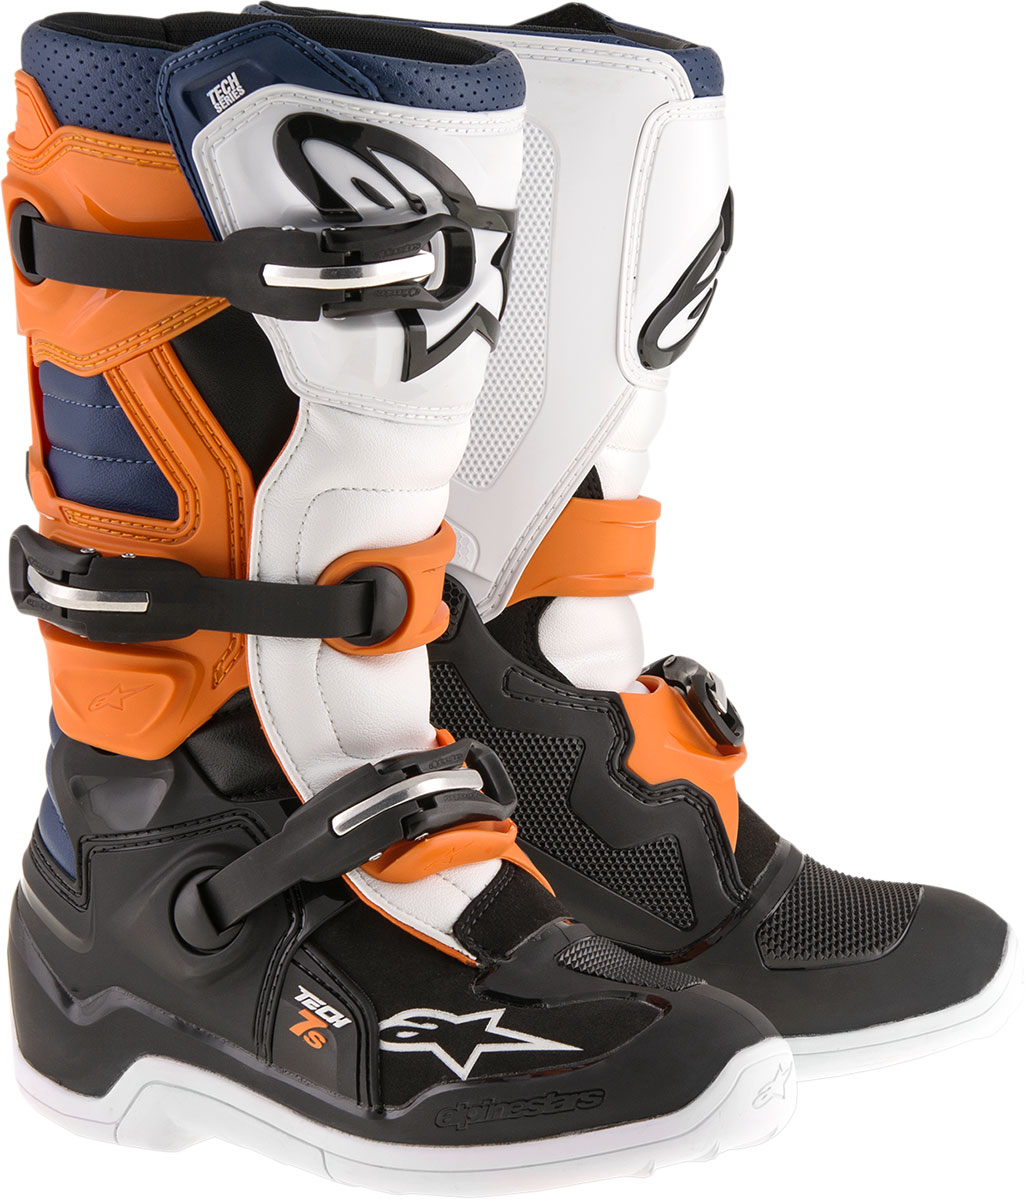 Alpinestars Motocross Offroad TECH 7S Boots (Black/Orange/Blue)